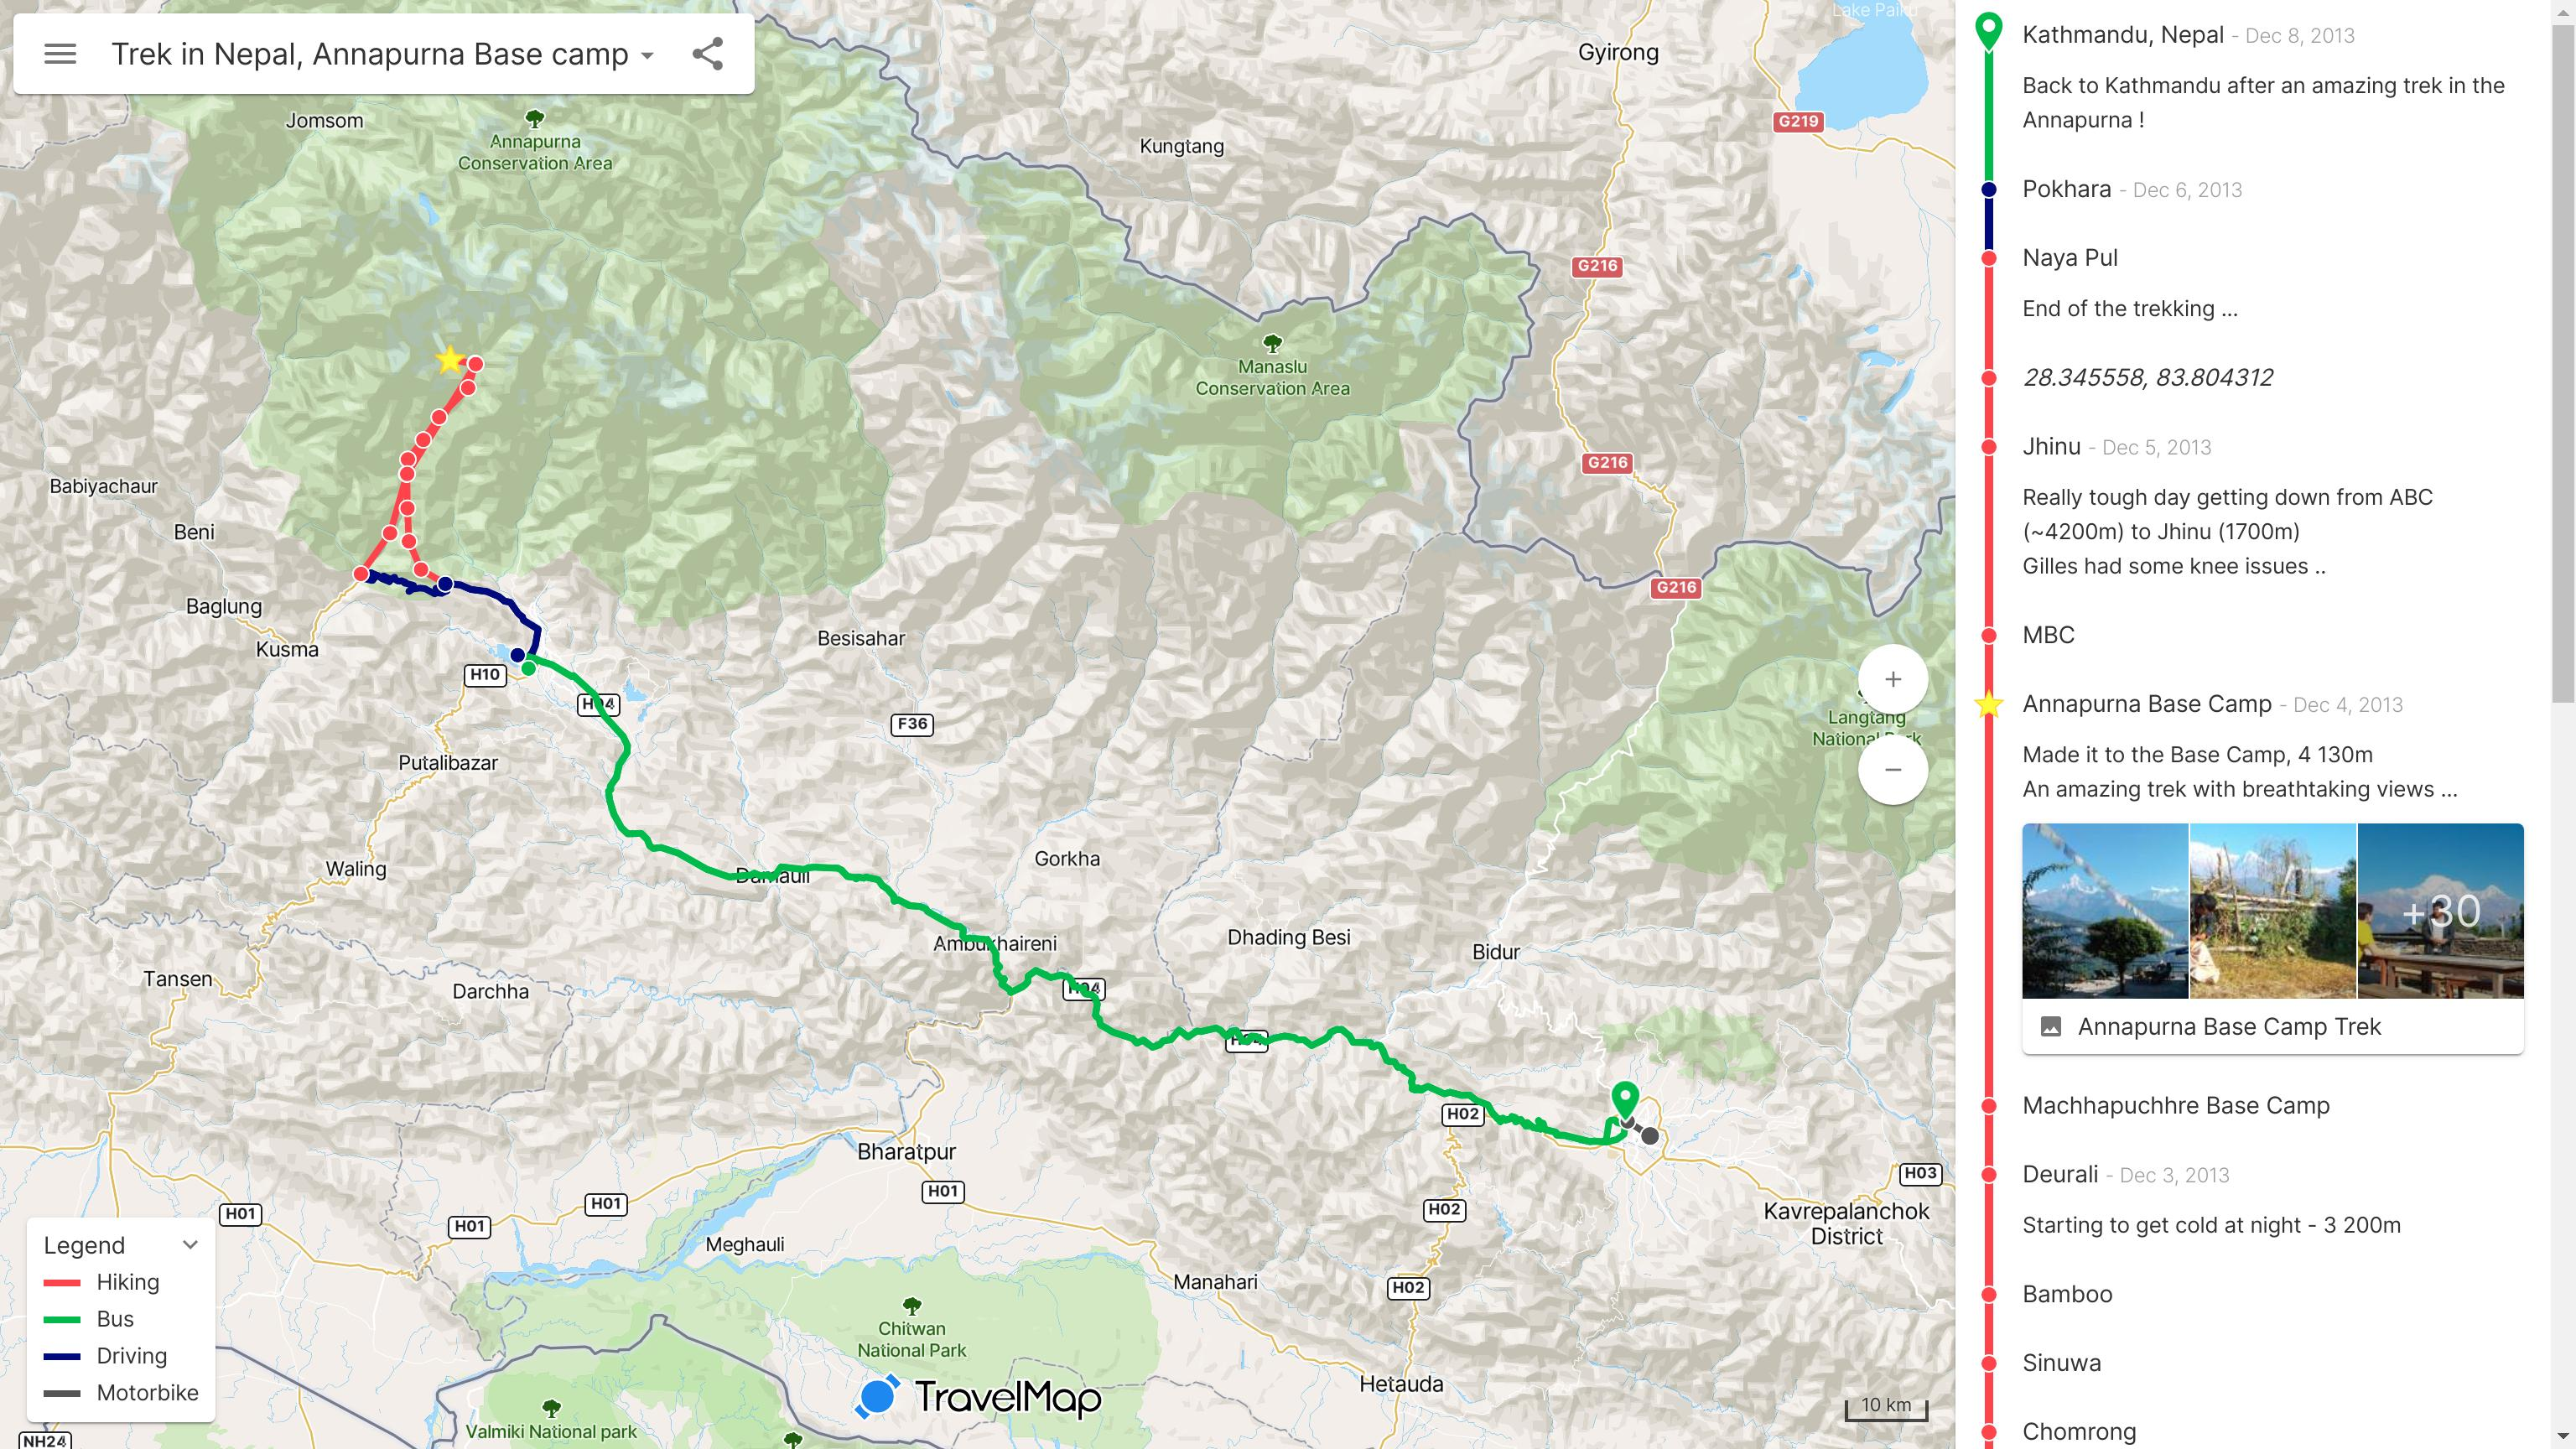 Trek in Nepal - Annapurna Base Camp map